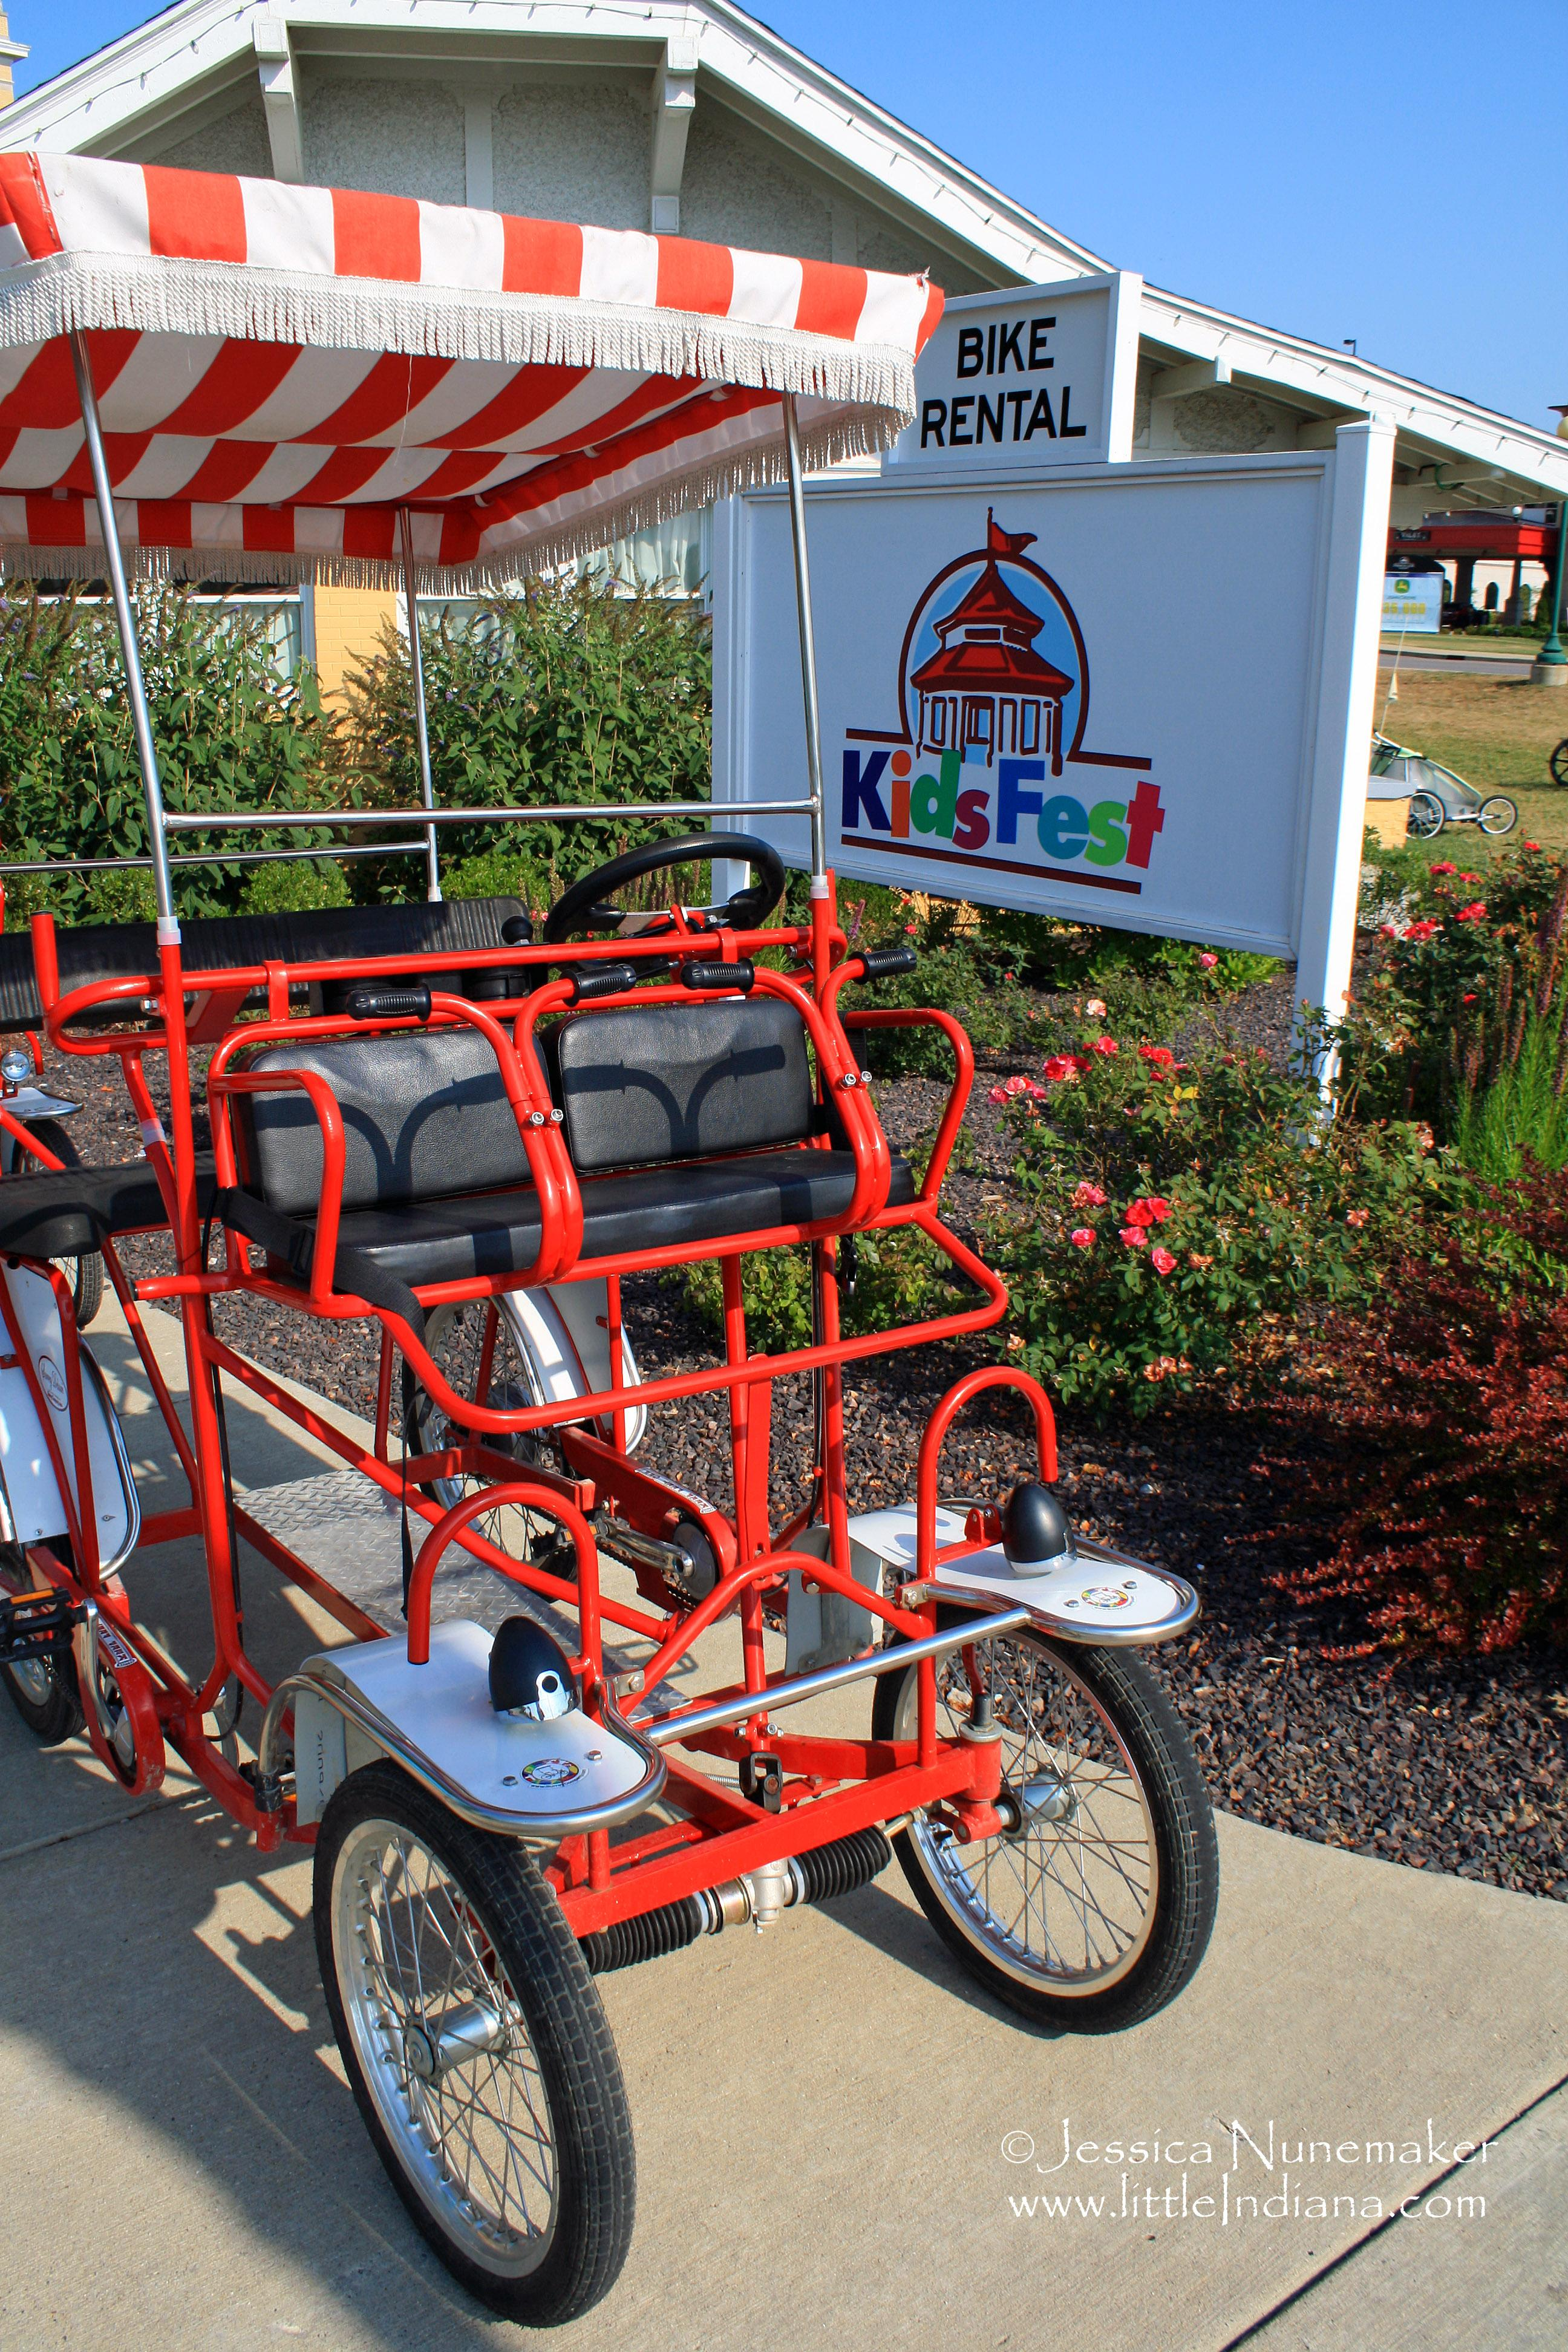 French Lick Springs Resort: Bike Rental in French Lick, Indiana